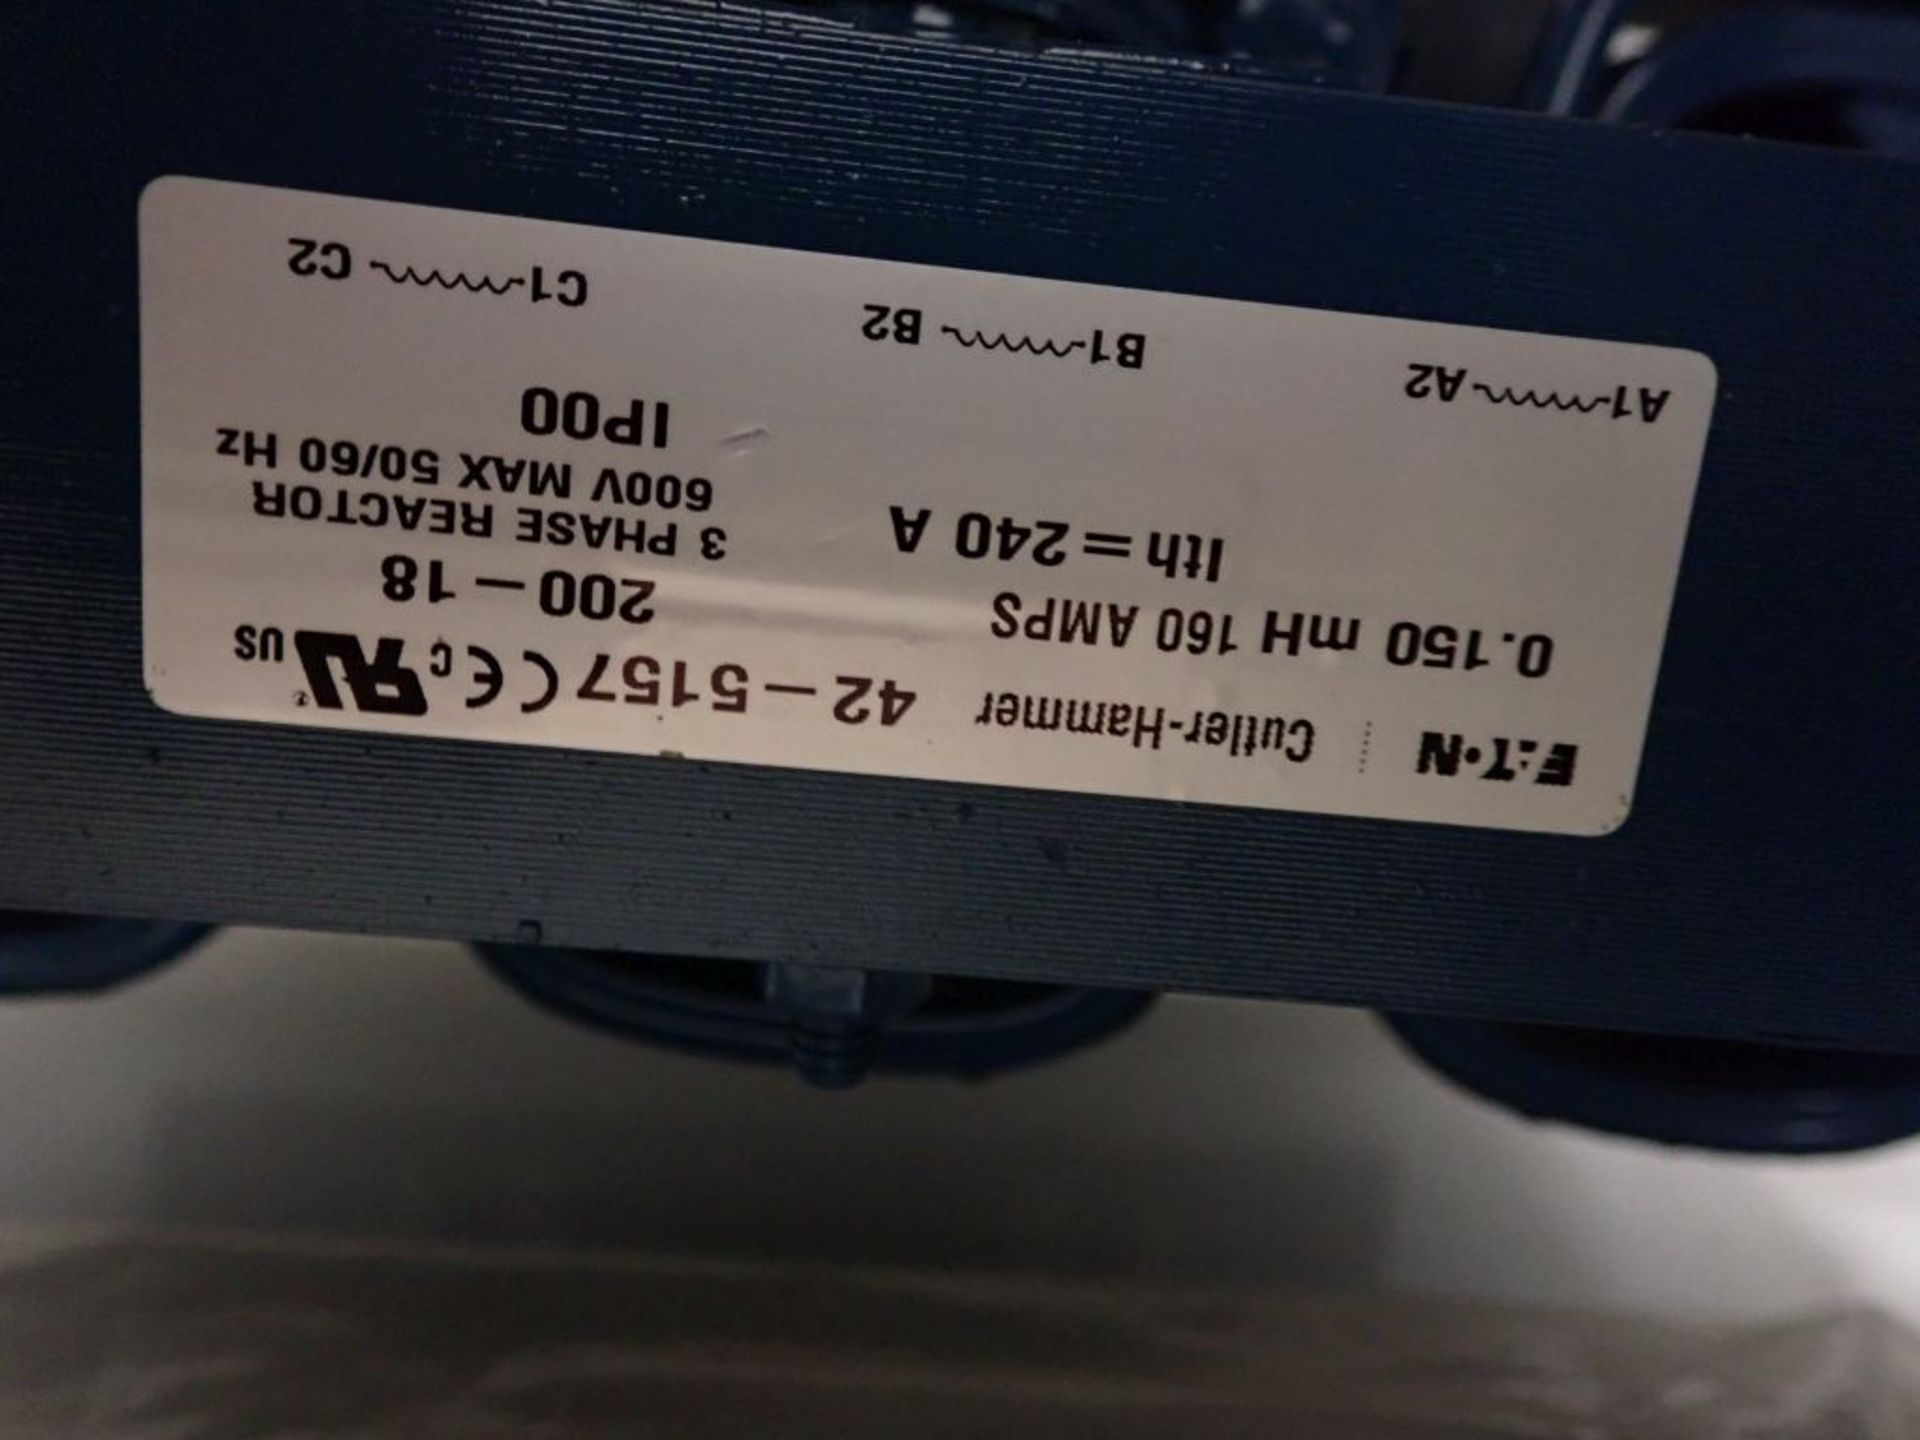 Eaton Freedom 2100 Series Motor Control Center | (11) F206-30A-10HP; (5) F206-15A-10HP; (1) SVX900- - Image 56 of 102